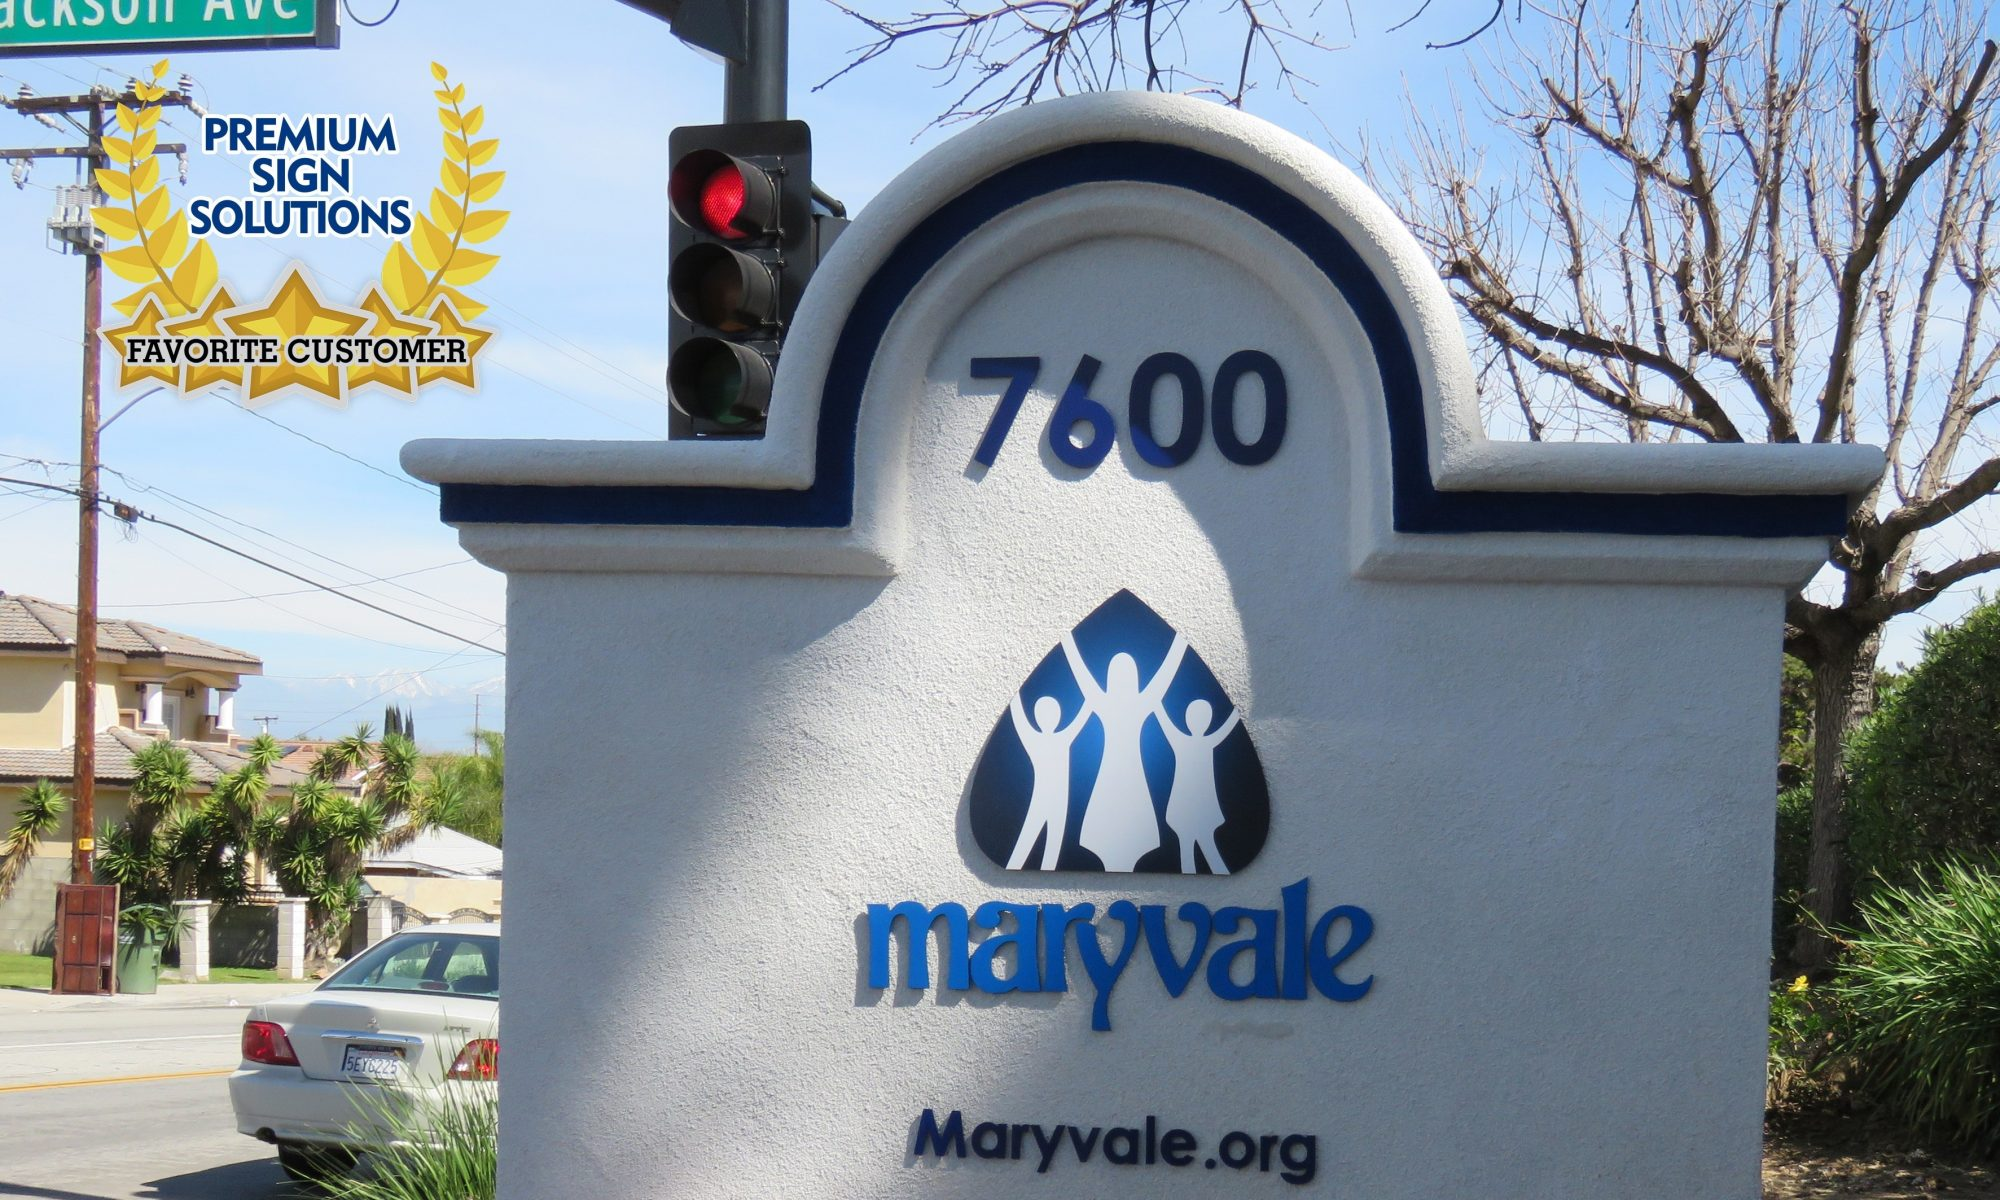 Maryvale is open and continues to offer essential childcare services. They are one of our favorite customers and we are proud to have made signs for them.